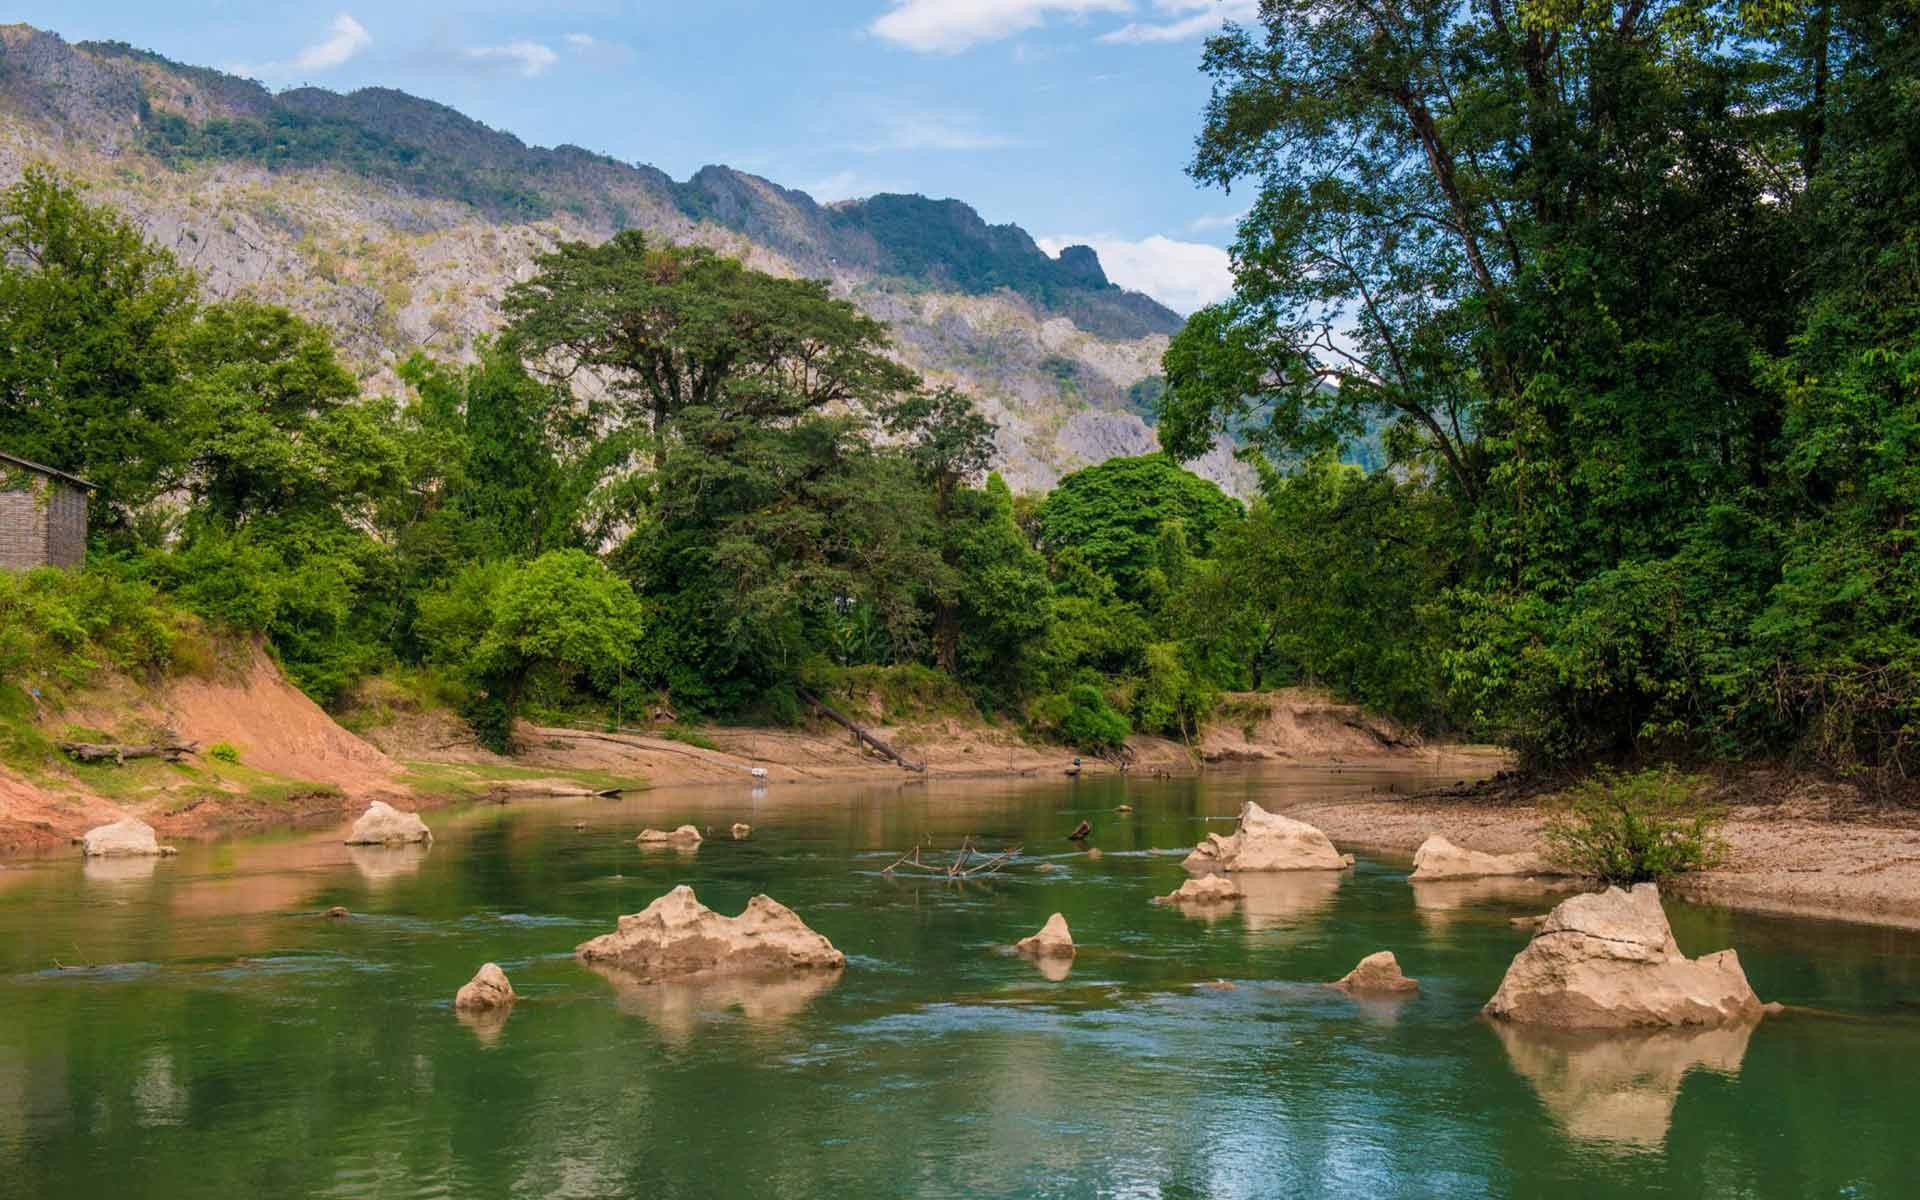 Konglor village - This place is very famous in Laos